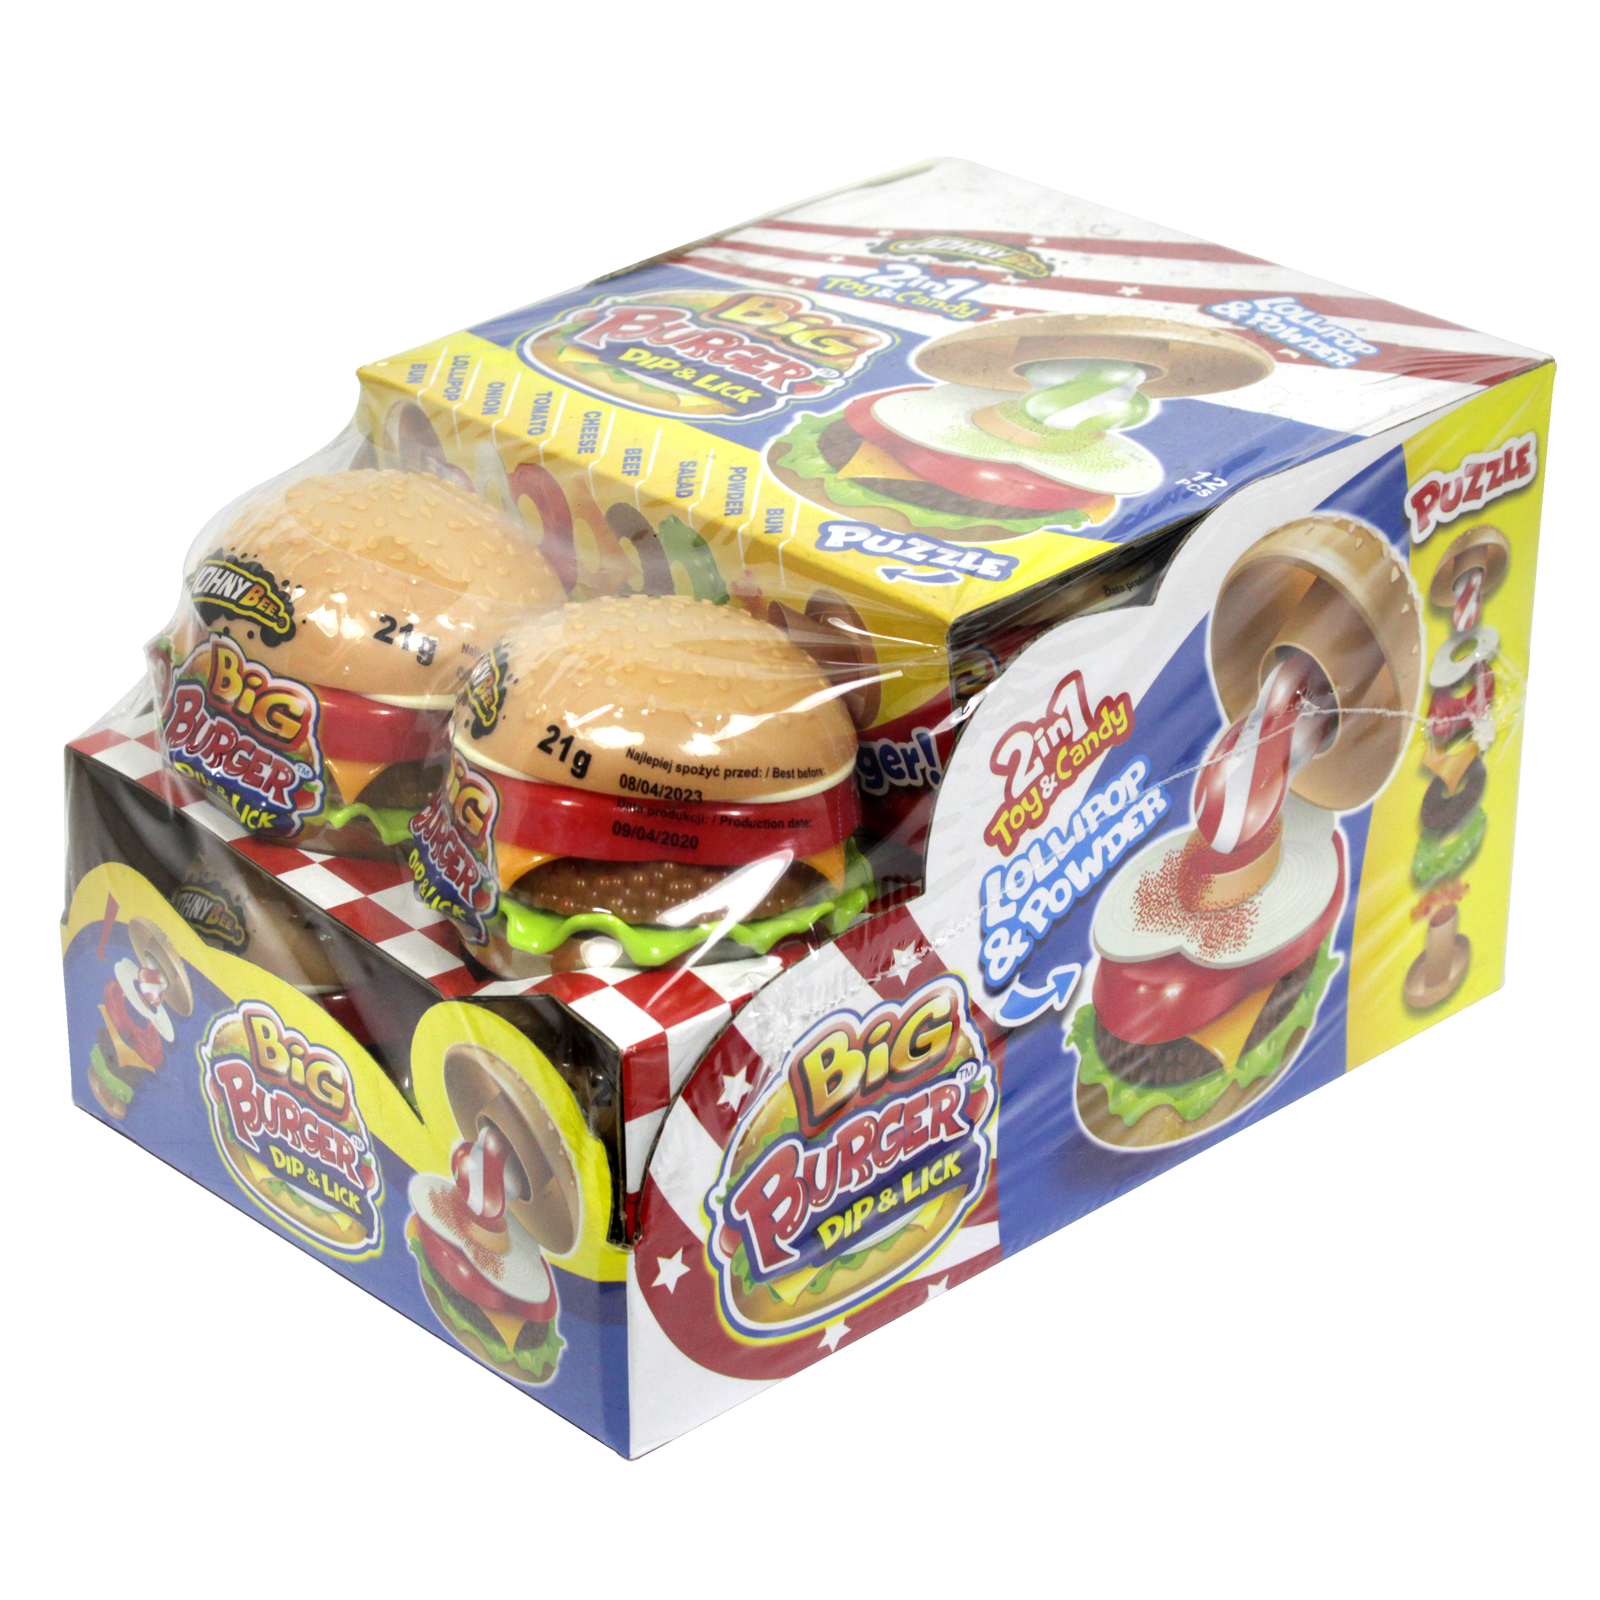 JOHNY BEE BIG BURGER DIP & LICK LOLLIPOP & POWDER 2 IN1 TOY AND CANDY X 12